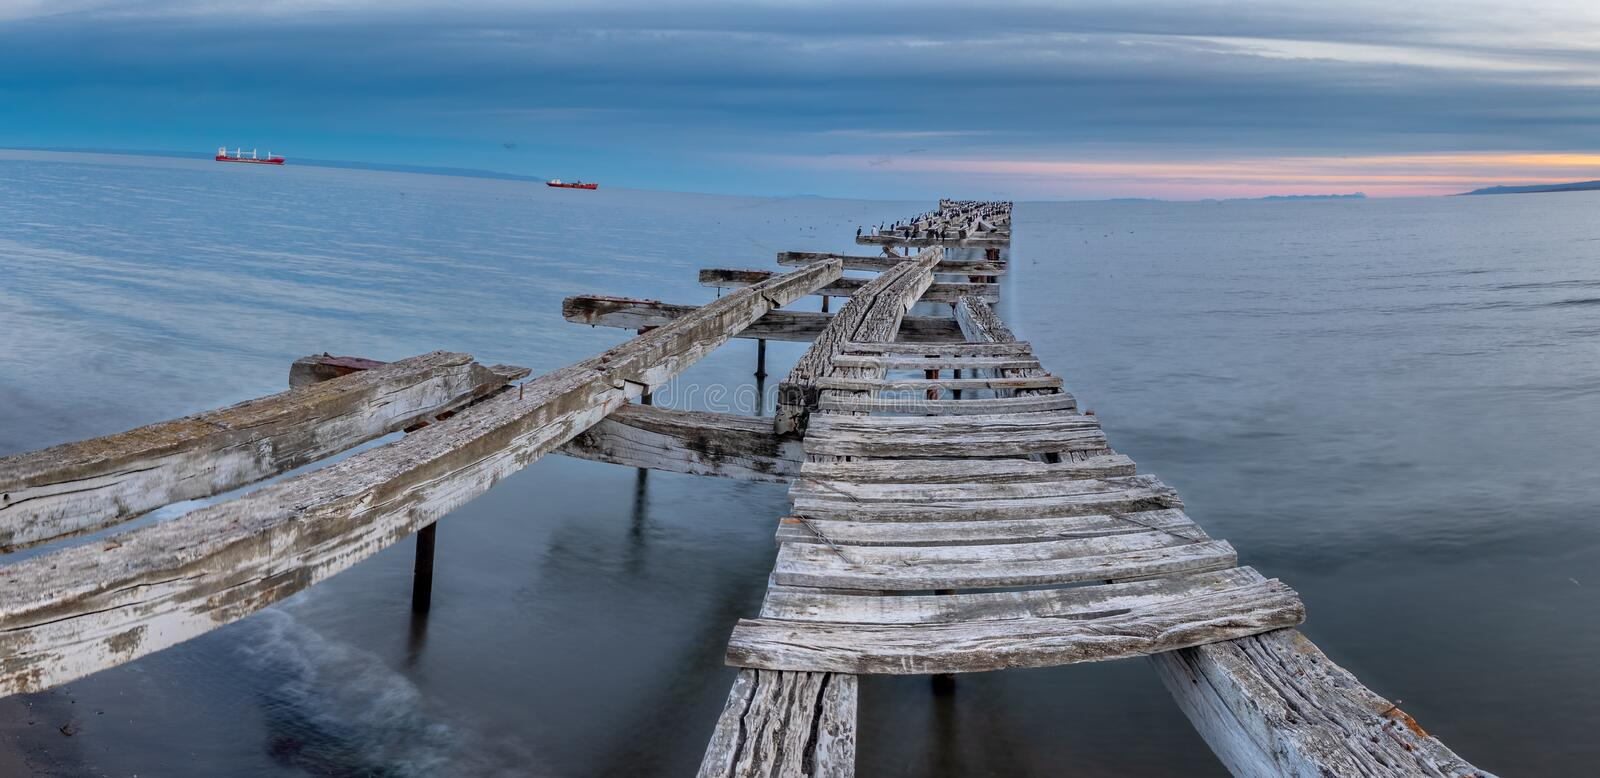 Loreto Pier Bridge at Punta Arenas, Chile. LORETO PIER (1900) - PUNTA ARENAS - CHILE in magellan strait, bird, landscape, latin, america, nature, south stock image